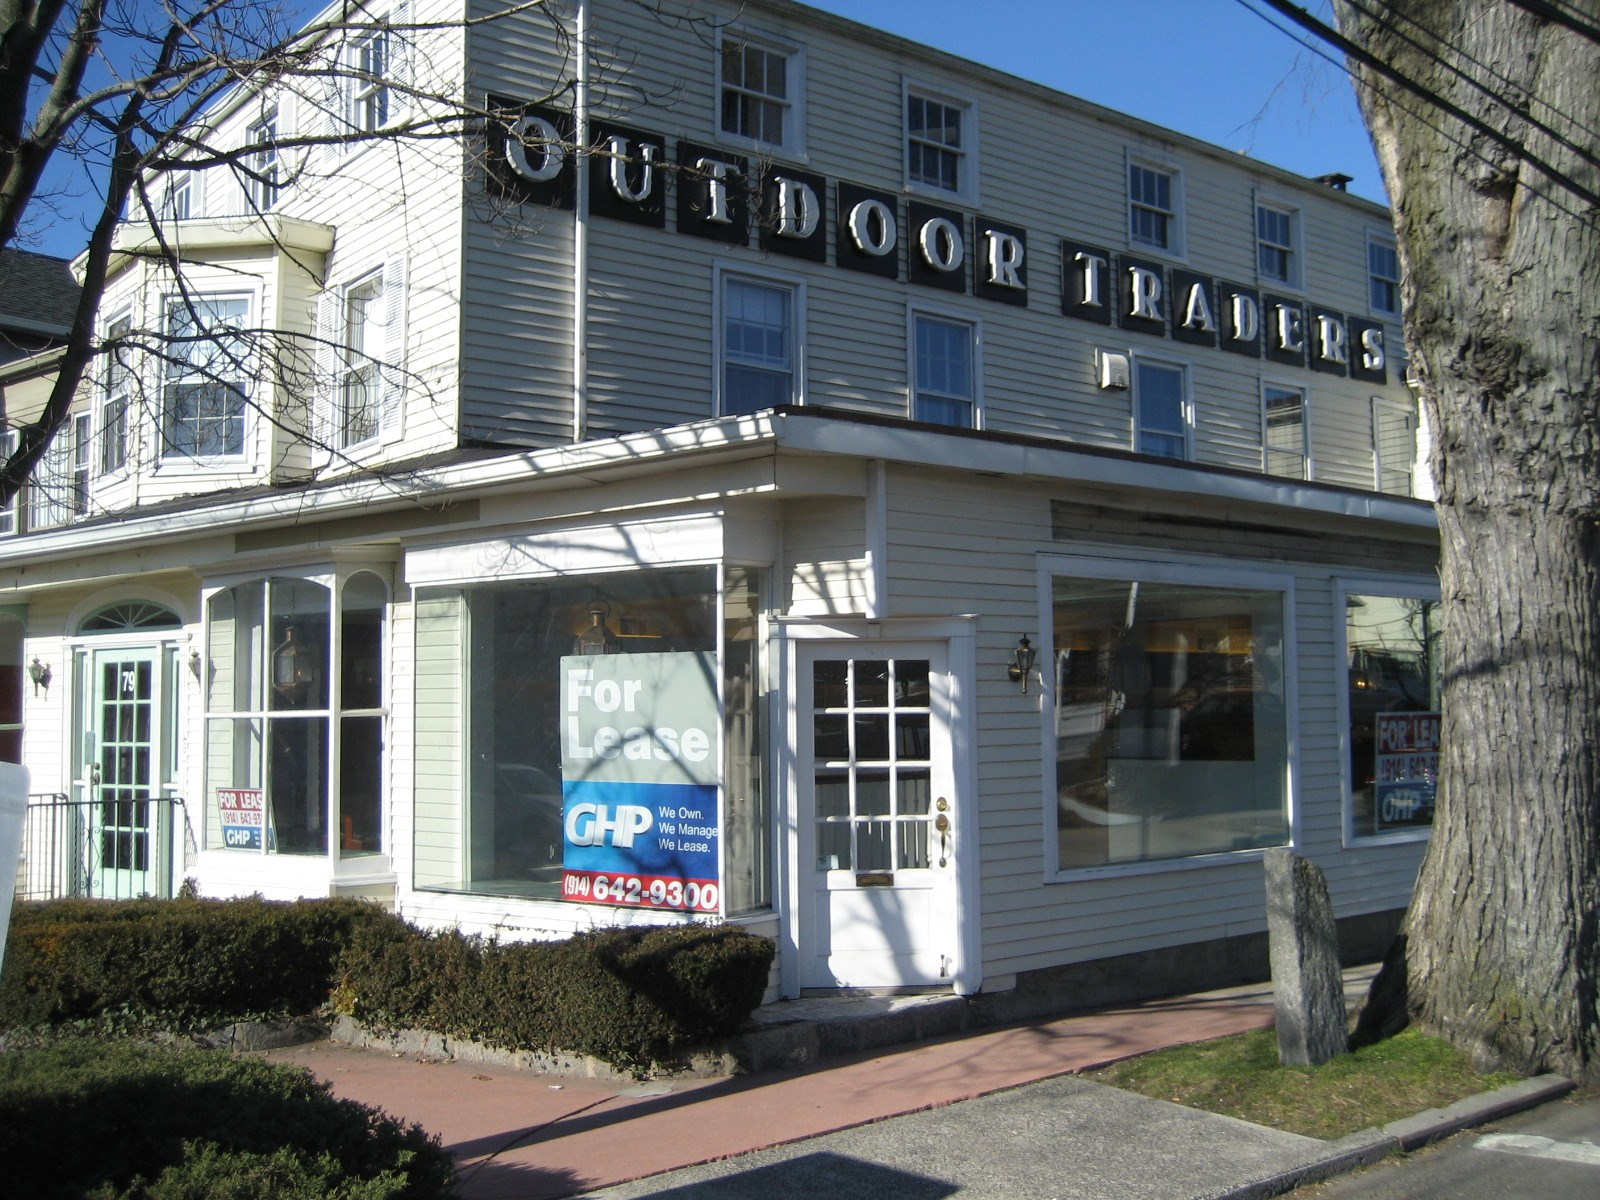 79 East Putnam Avenue – Greenwich, CT 06830 – 627 sq. ft.